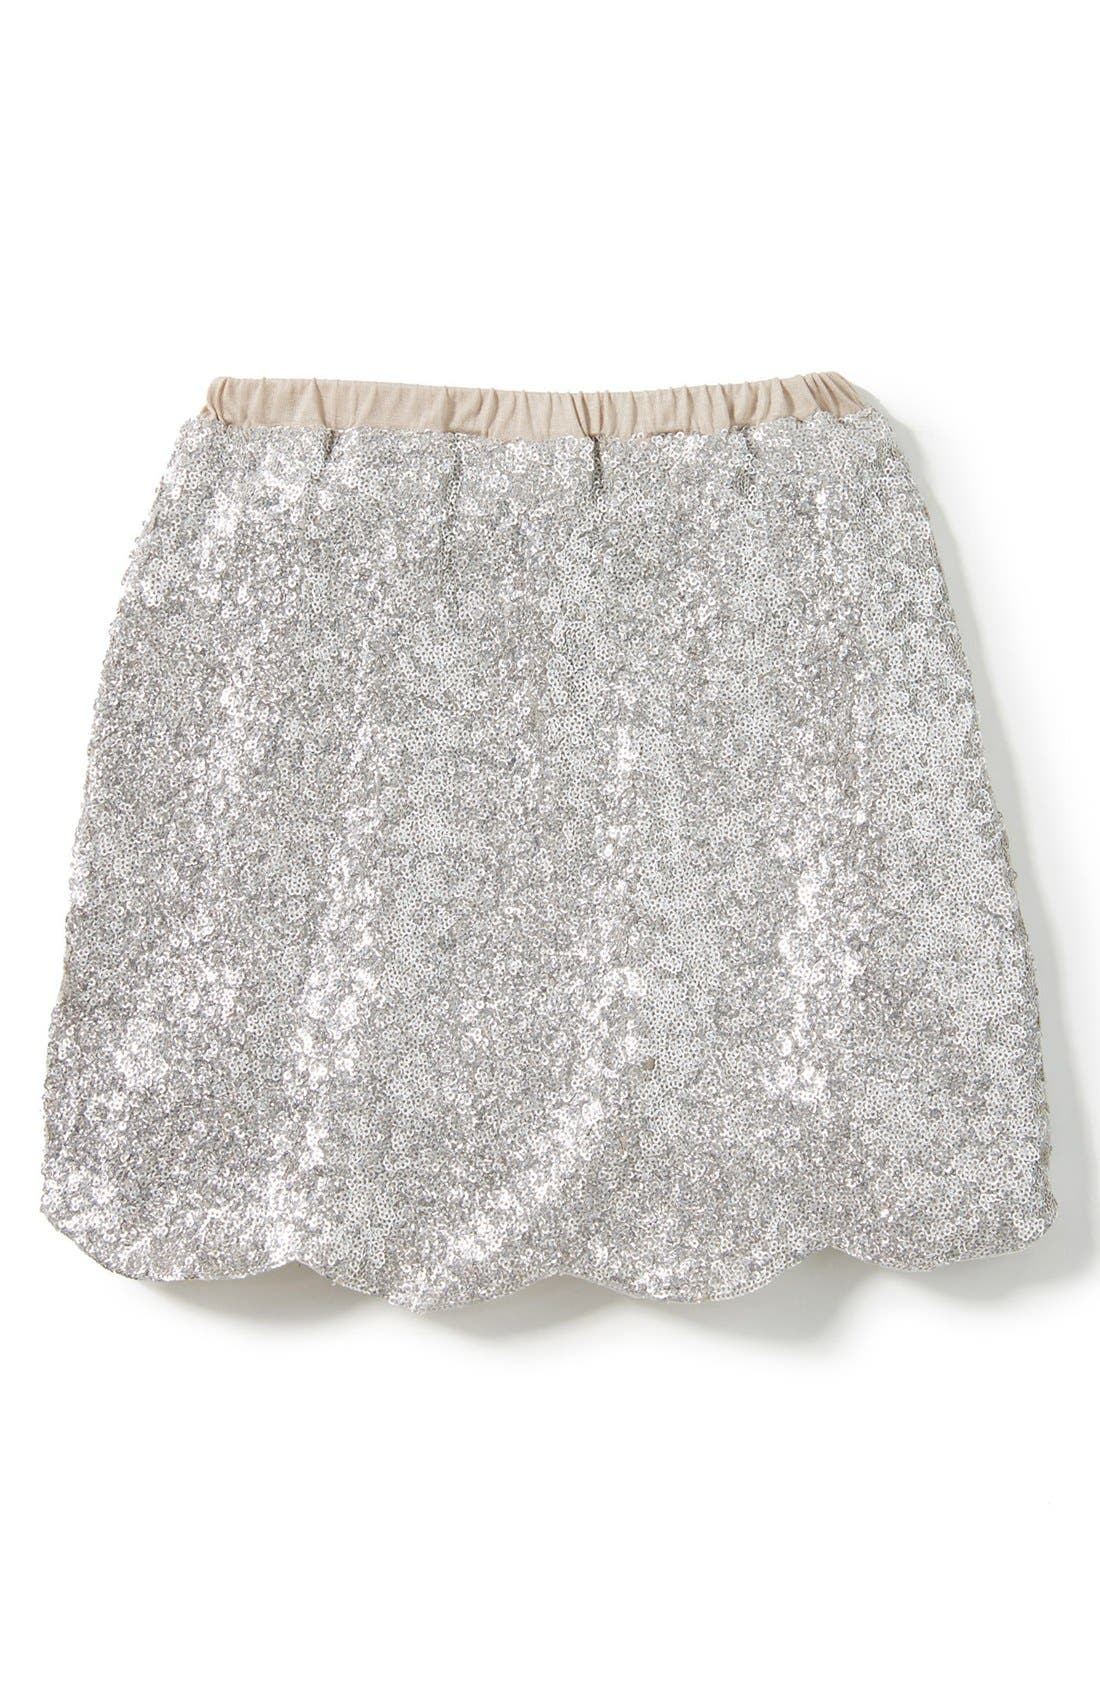 Alternate Image 1 Selected - Peek Drew Sequin Skirt (Little Girls & Big Girls)